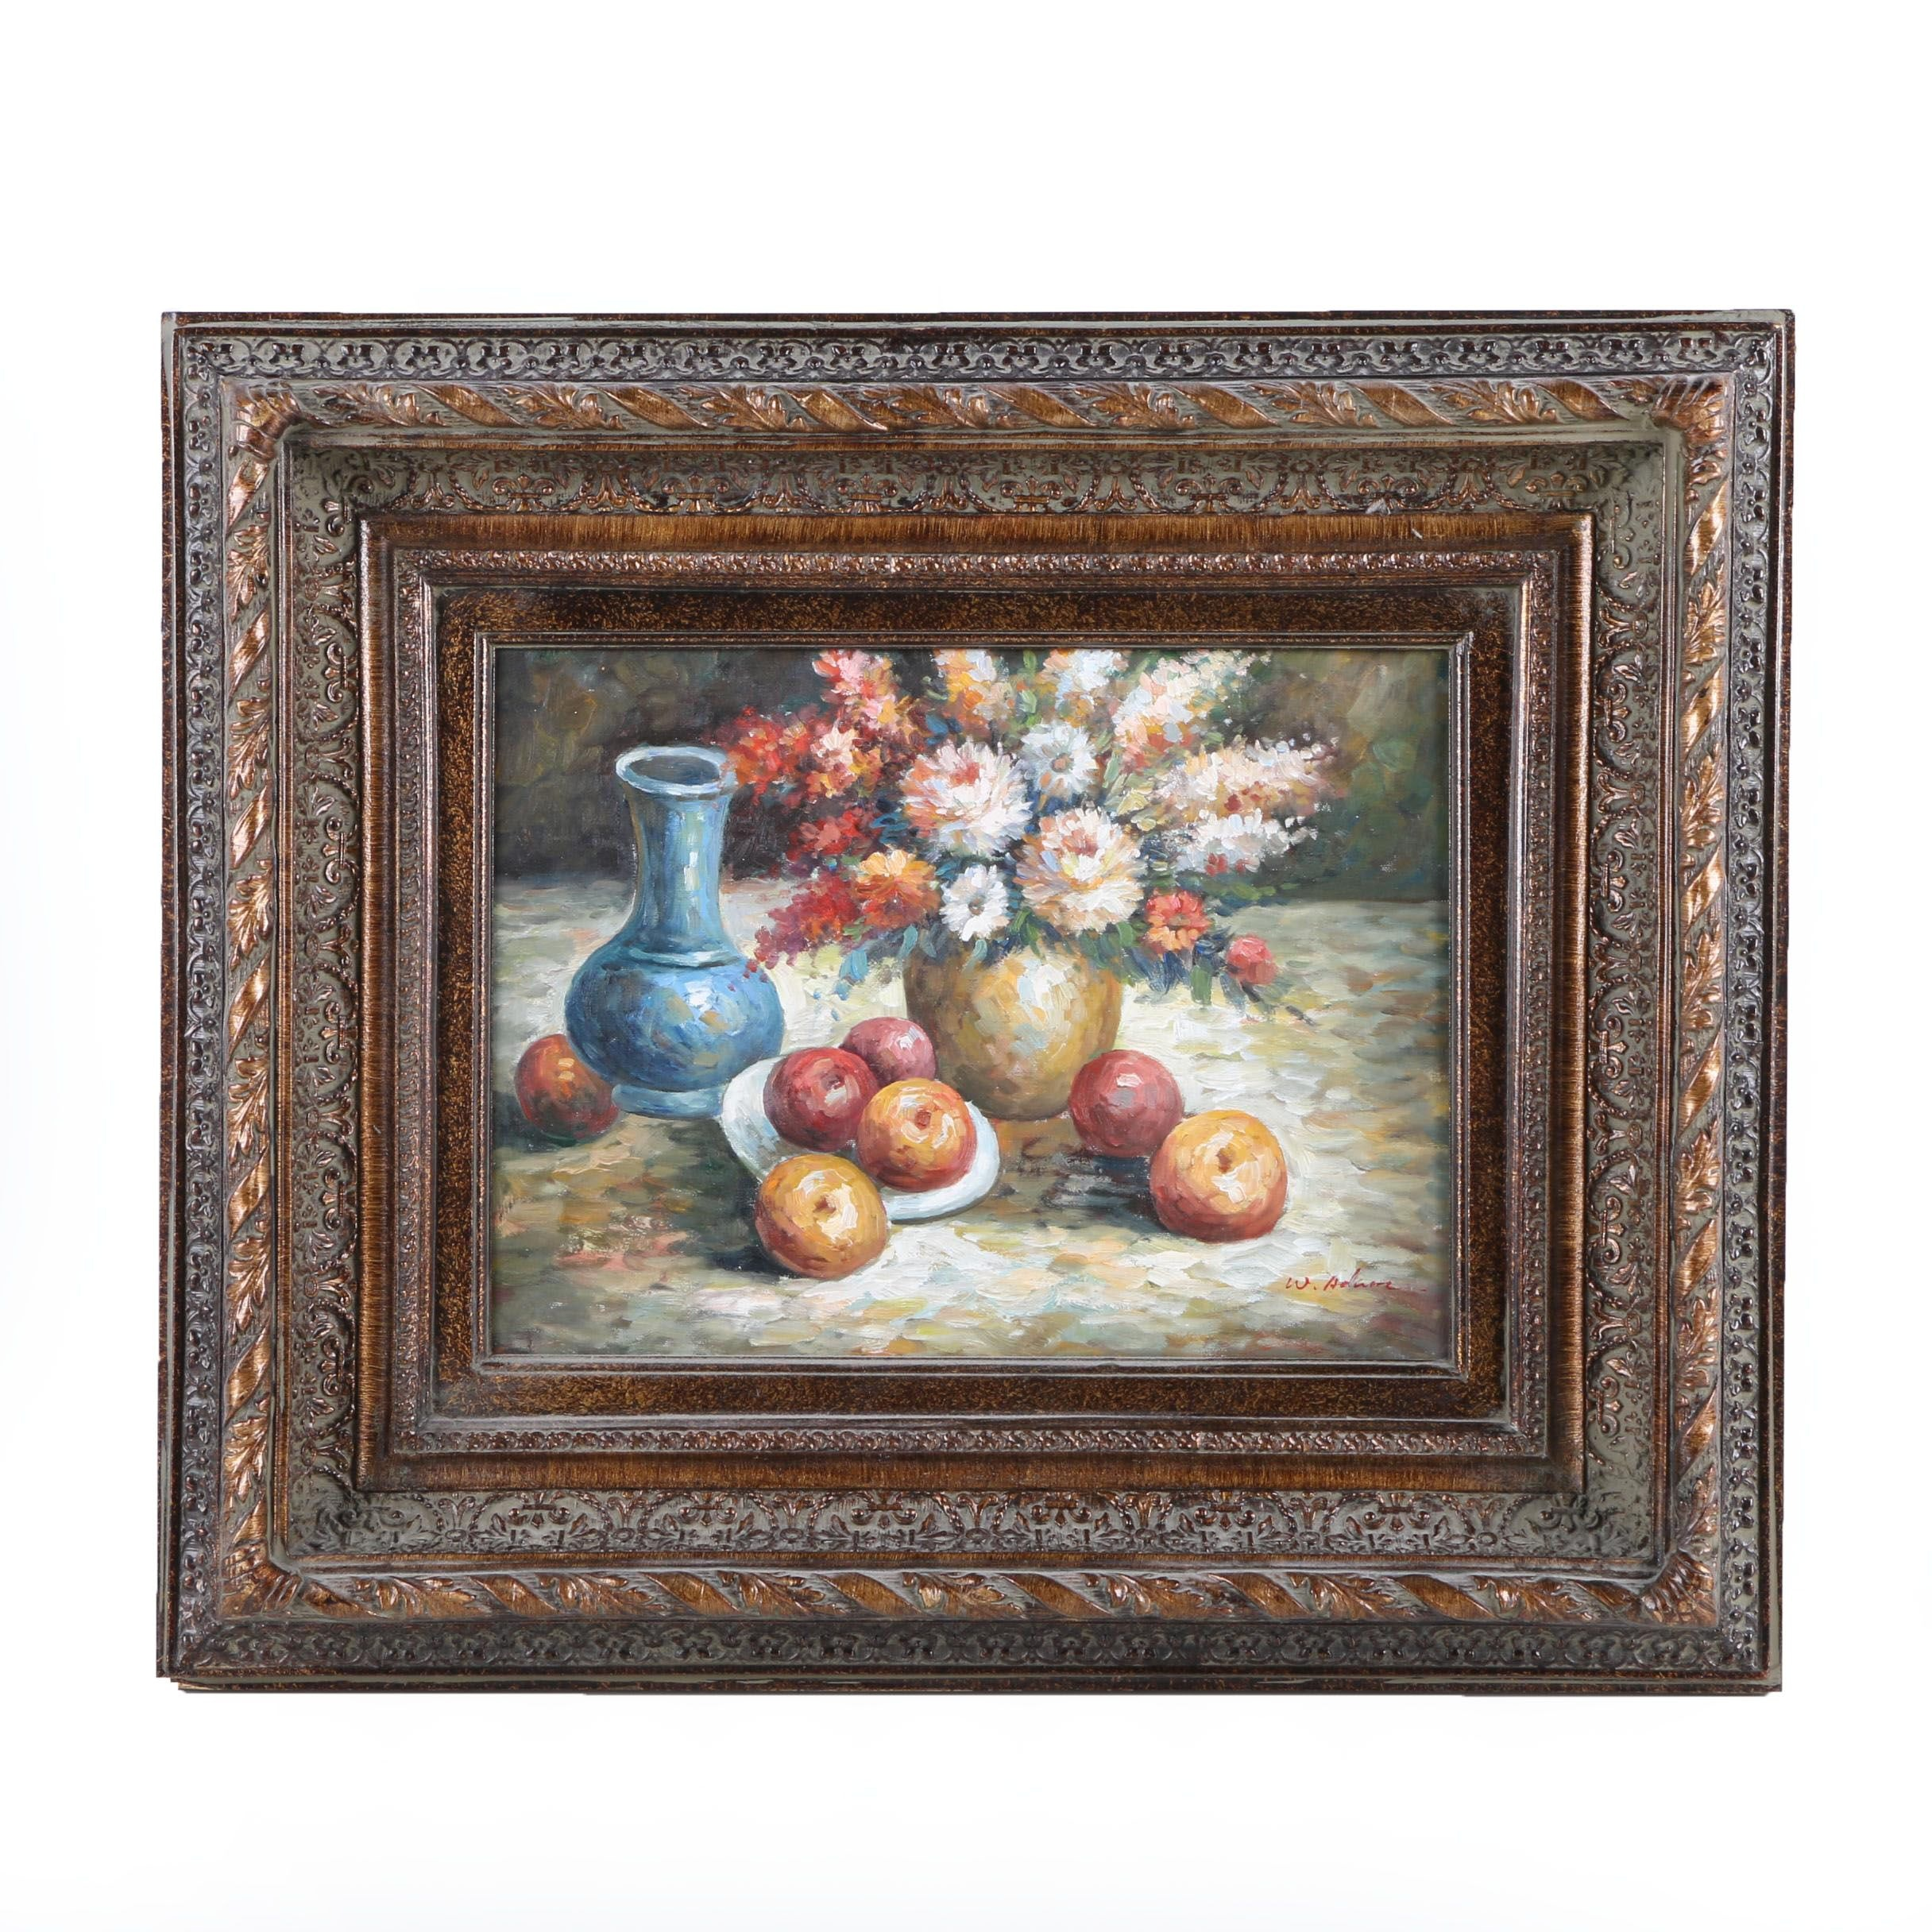 W. Adams Oil Painting on Canvas of Still Life